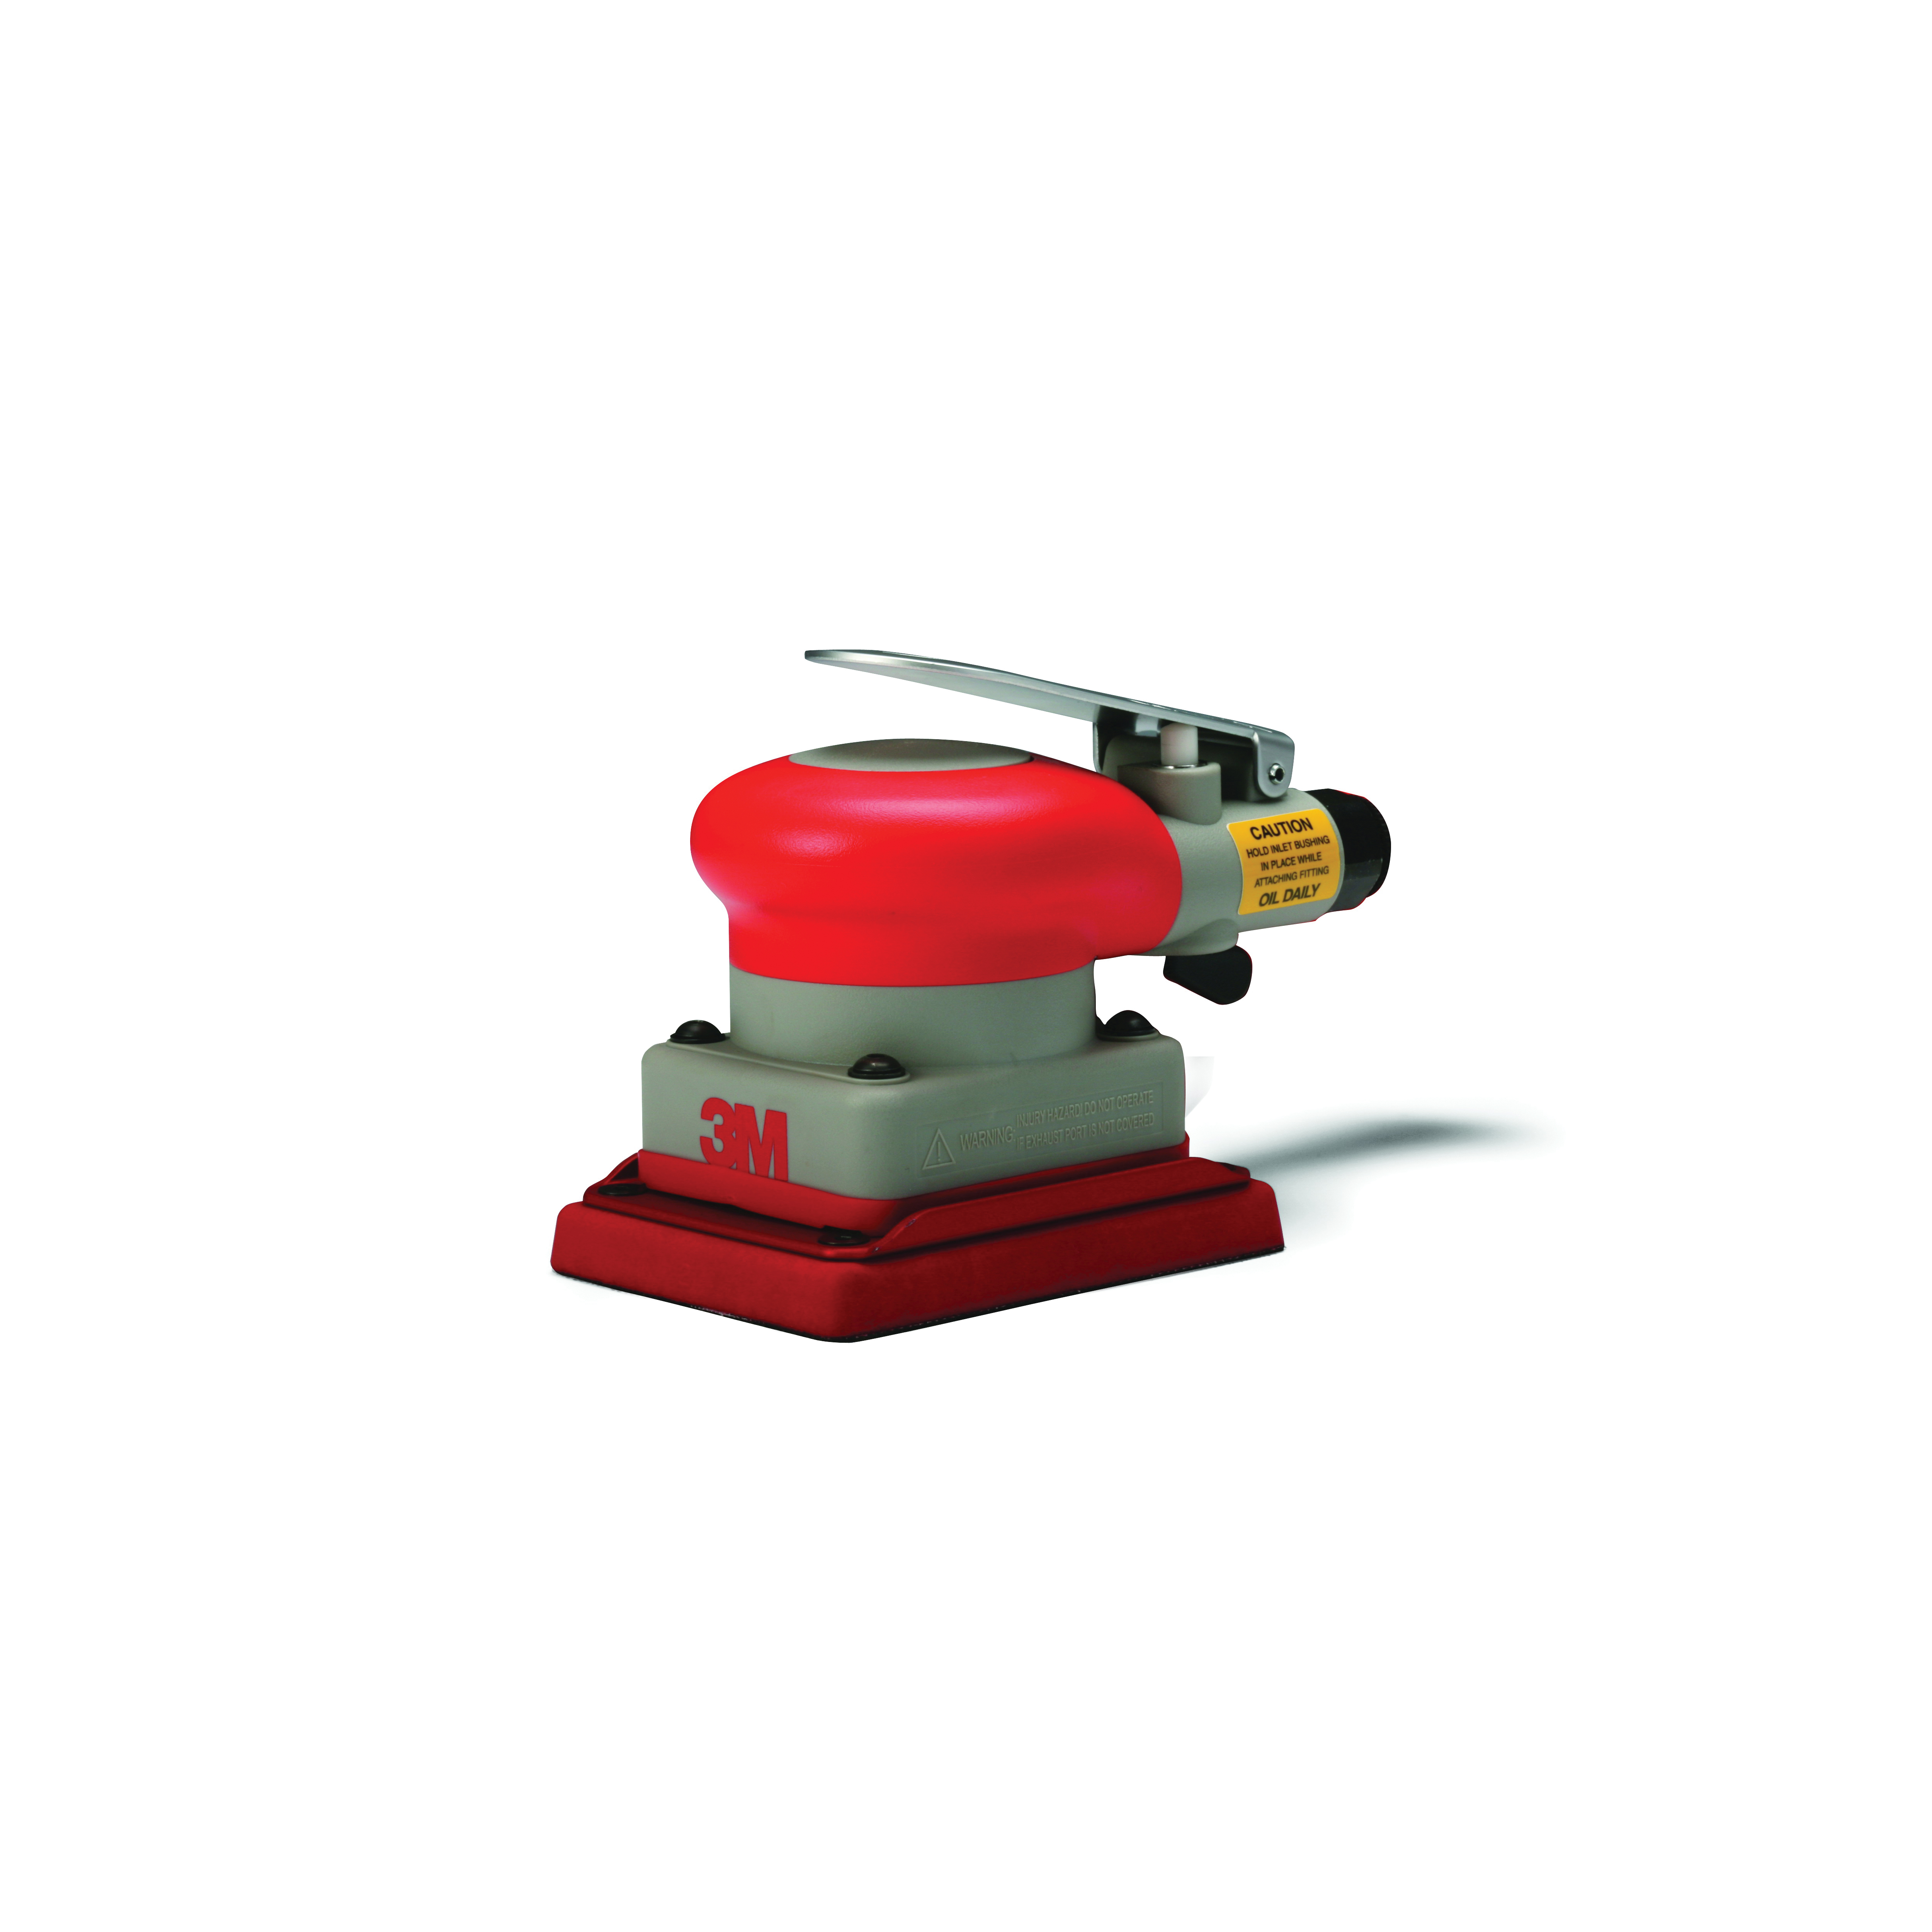 3M™ 051141-20331 Non-Vacuum Pneumatic Orbital Sander, 3 x 4 in Rectangle Pad, 17 scfm Air Flow, 90 psi